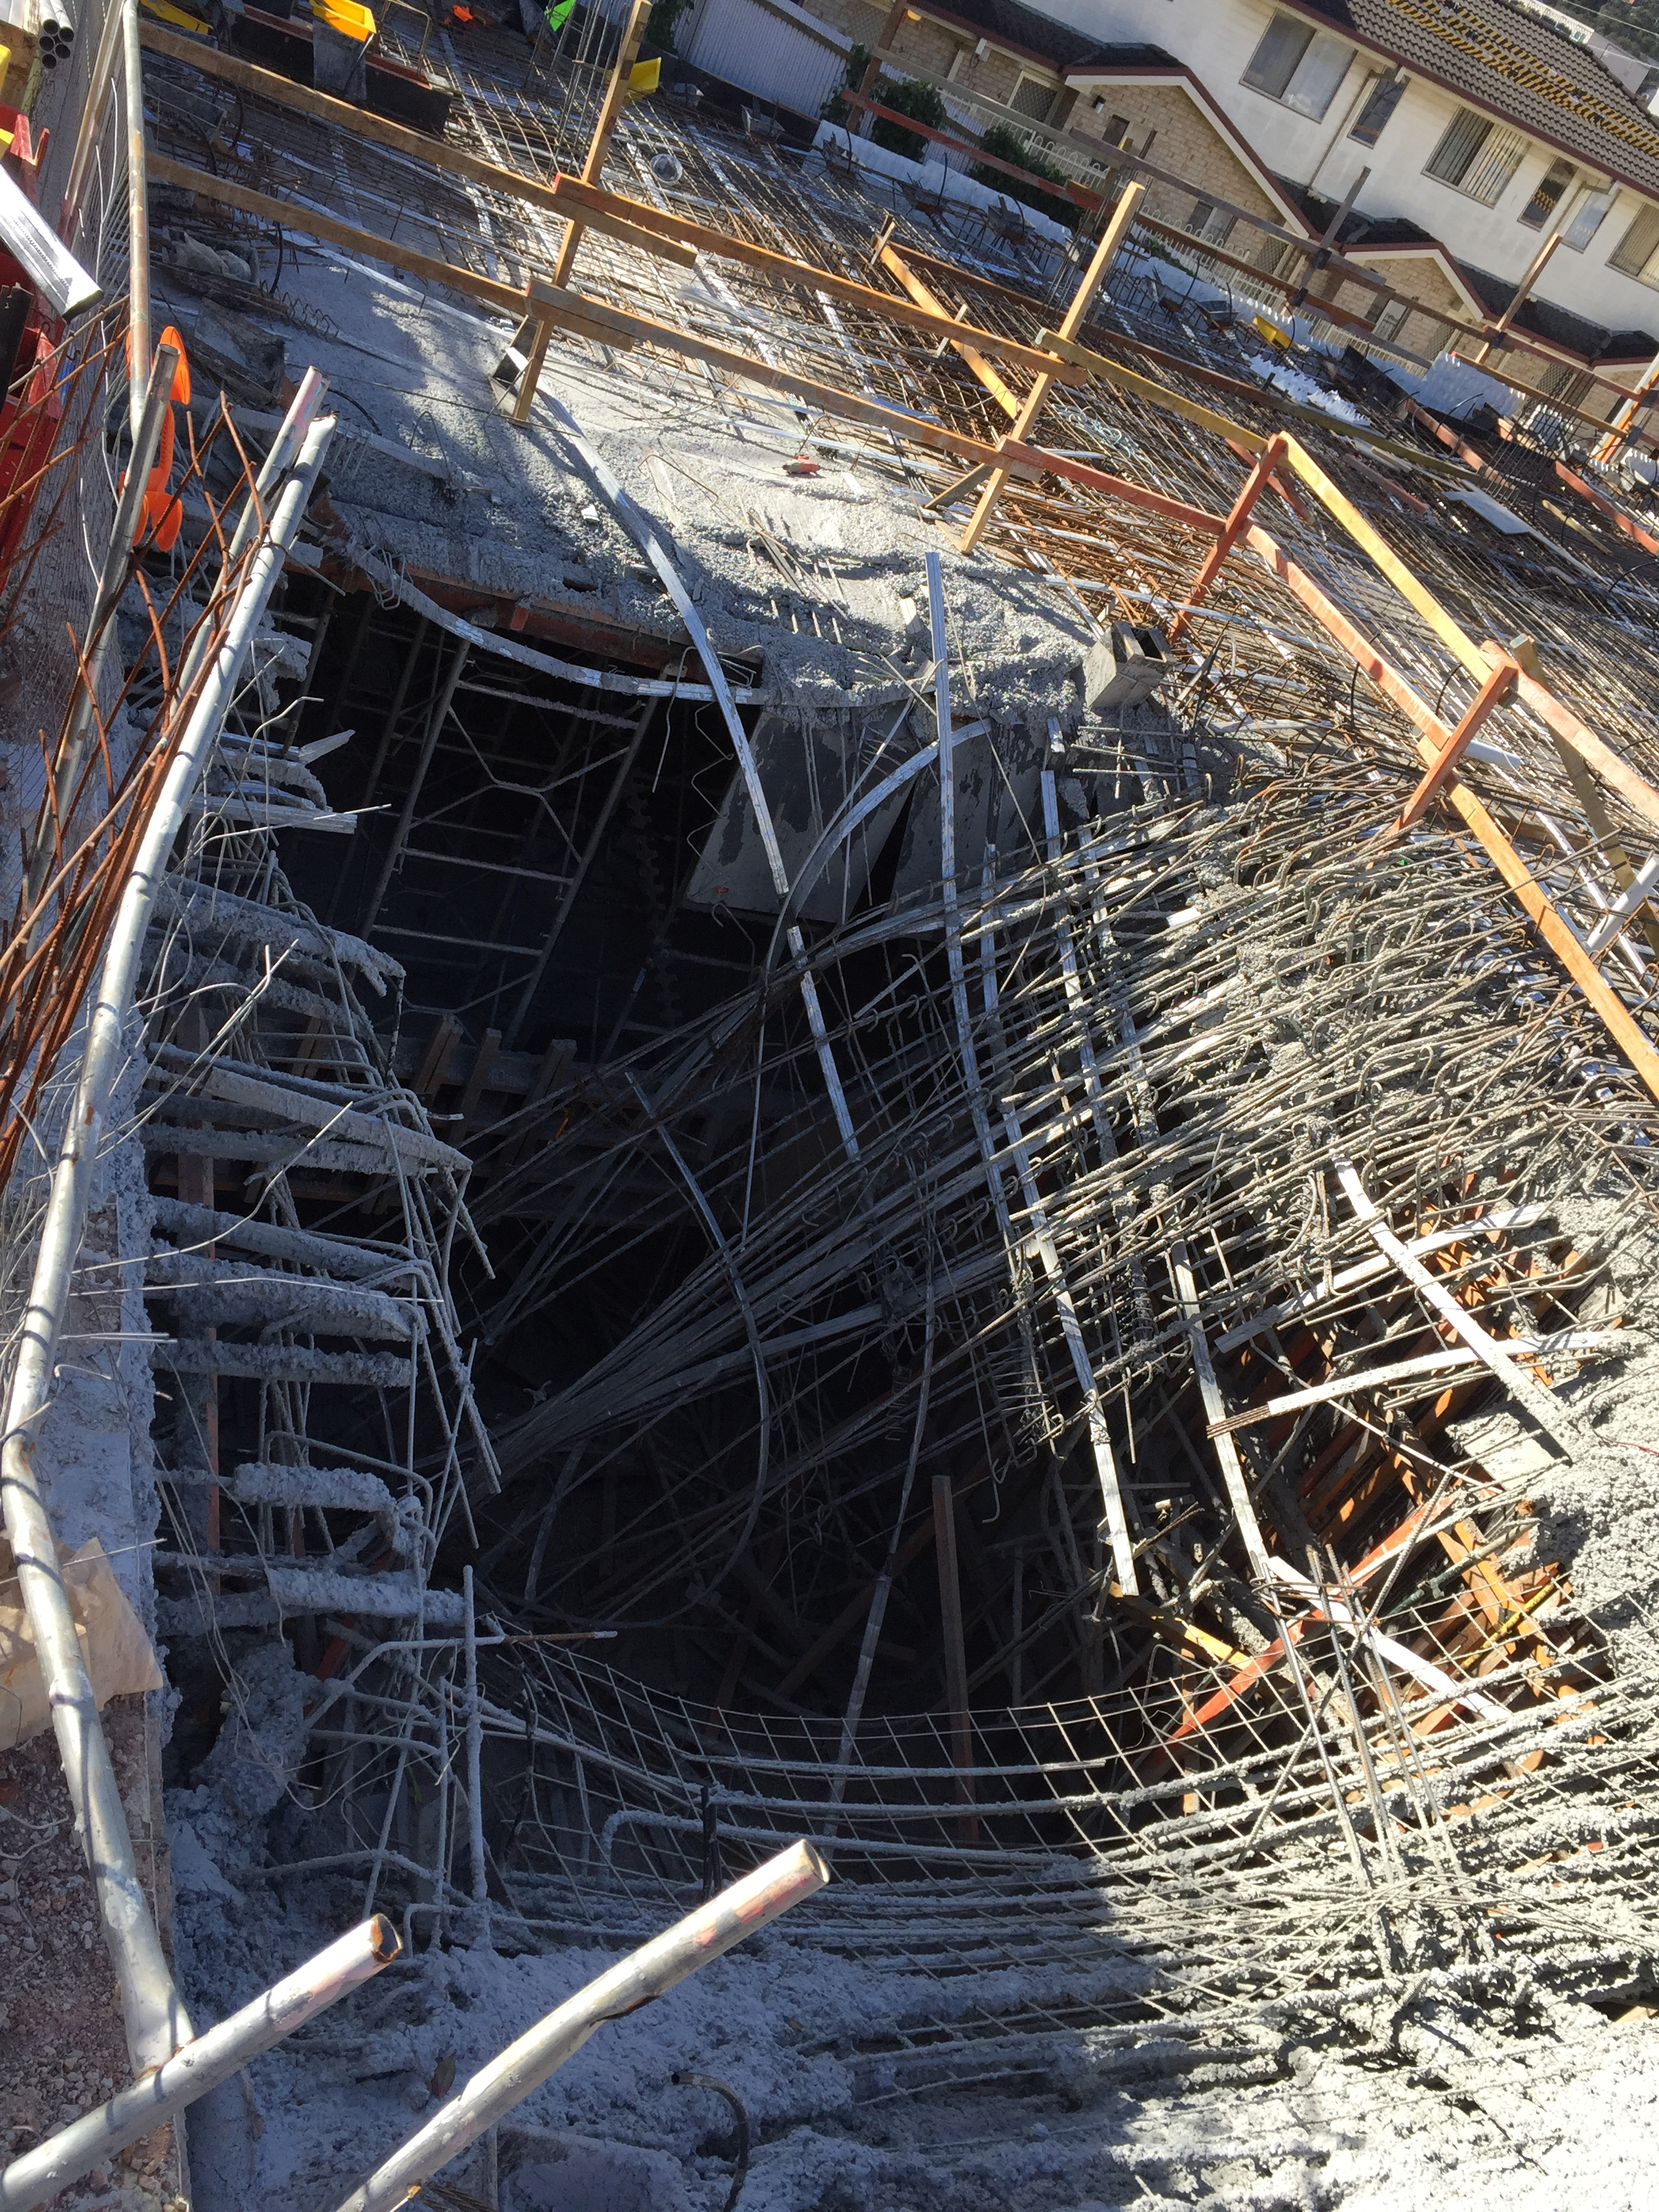 Image: Construction site showing where the collapse occurred.